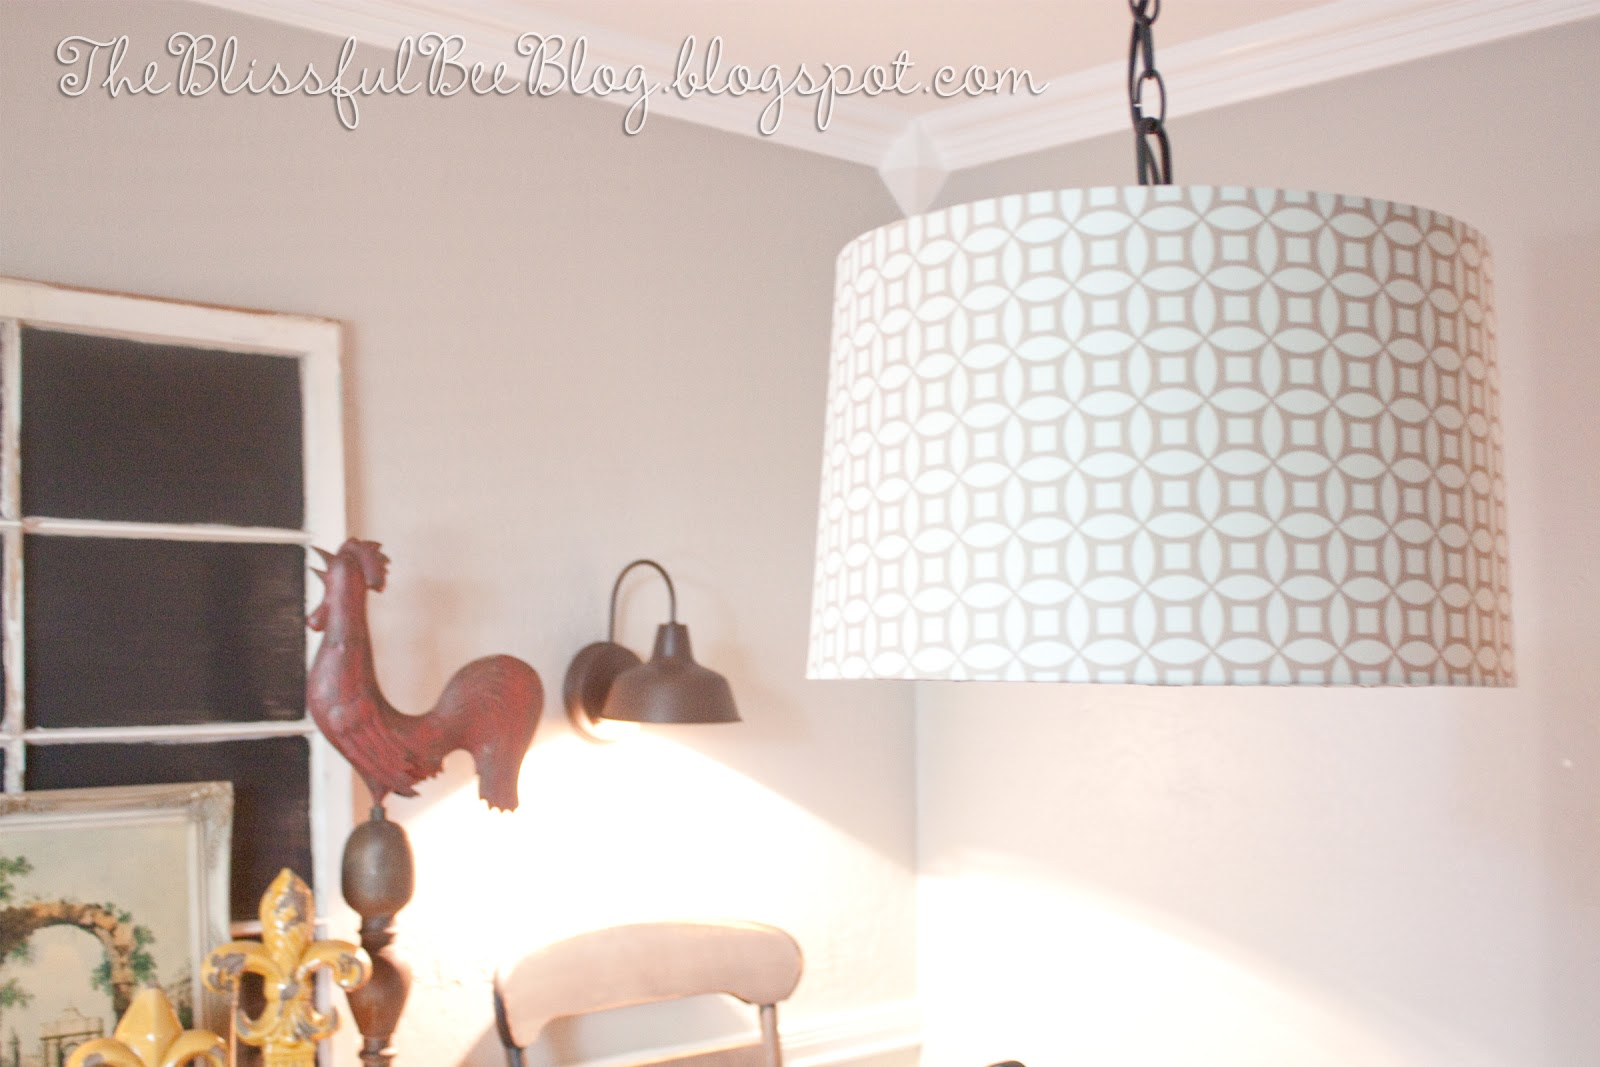 Diy Hanging Drum Light Fixture The Blissful Bee